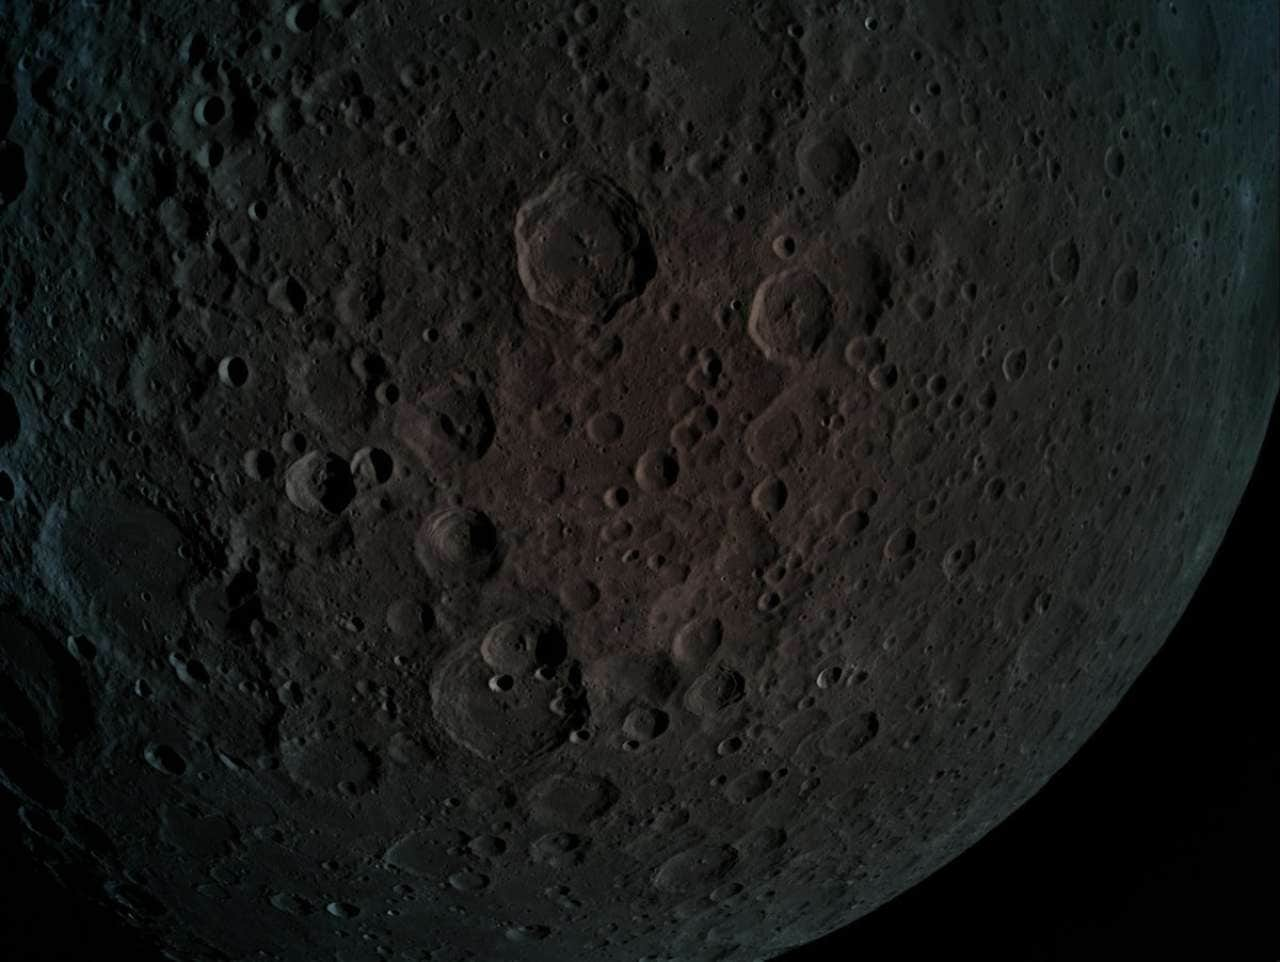 Shrinking Moon: Sporadic quakes from tectonic activity has left wrinkles on the Moon